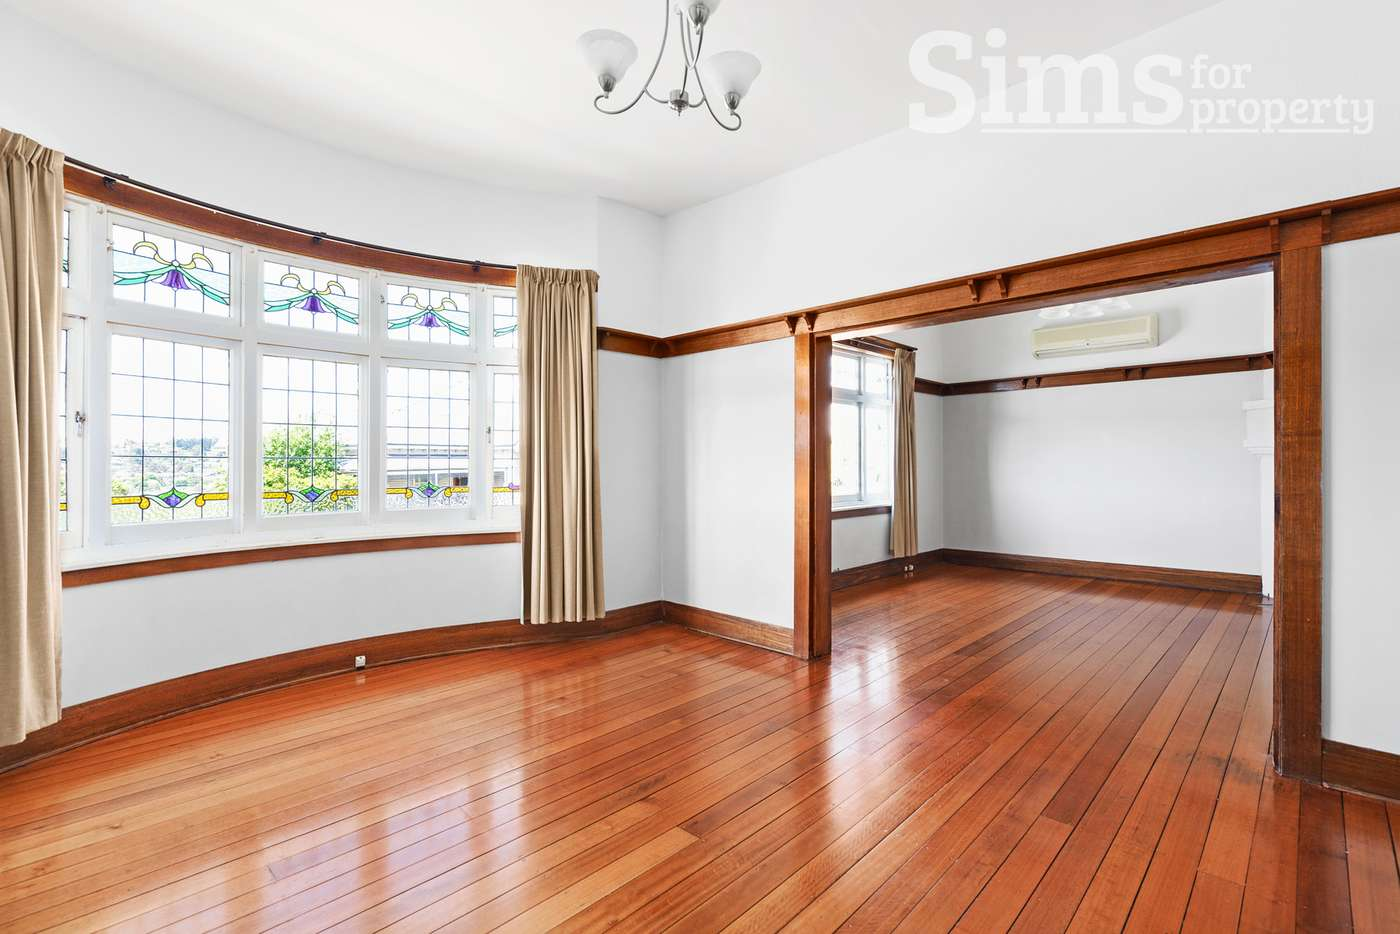 Fifth view of Homely house listing, 16 Hillside Crescent, West Launceston TAS 7250